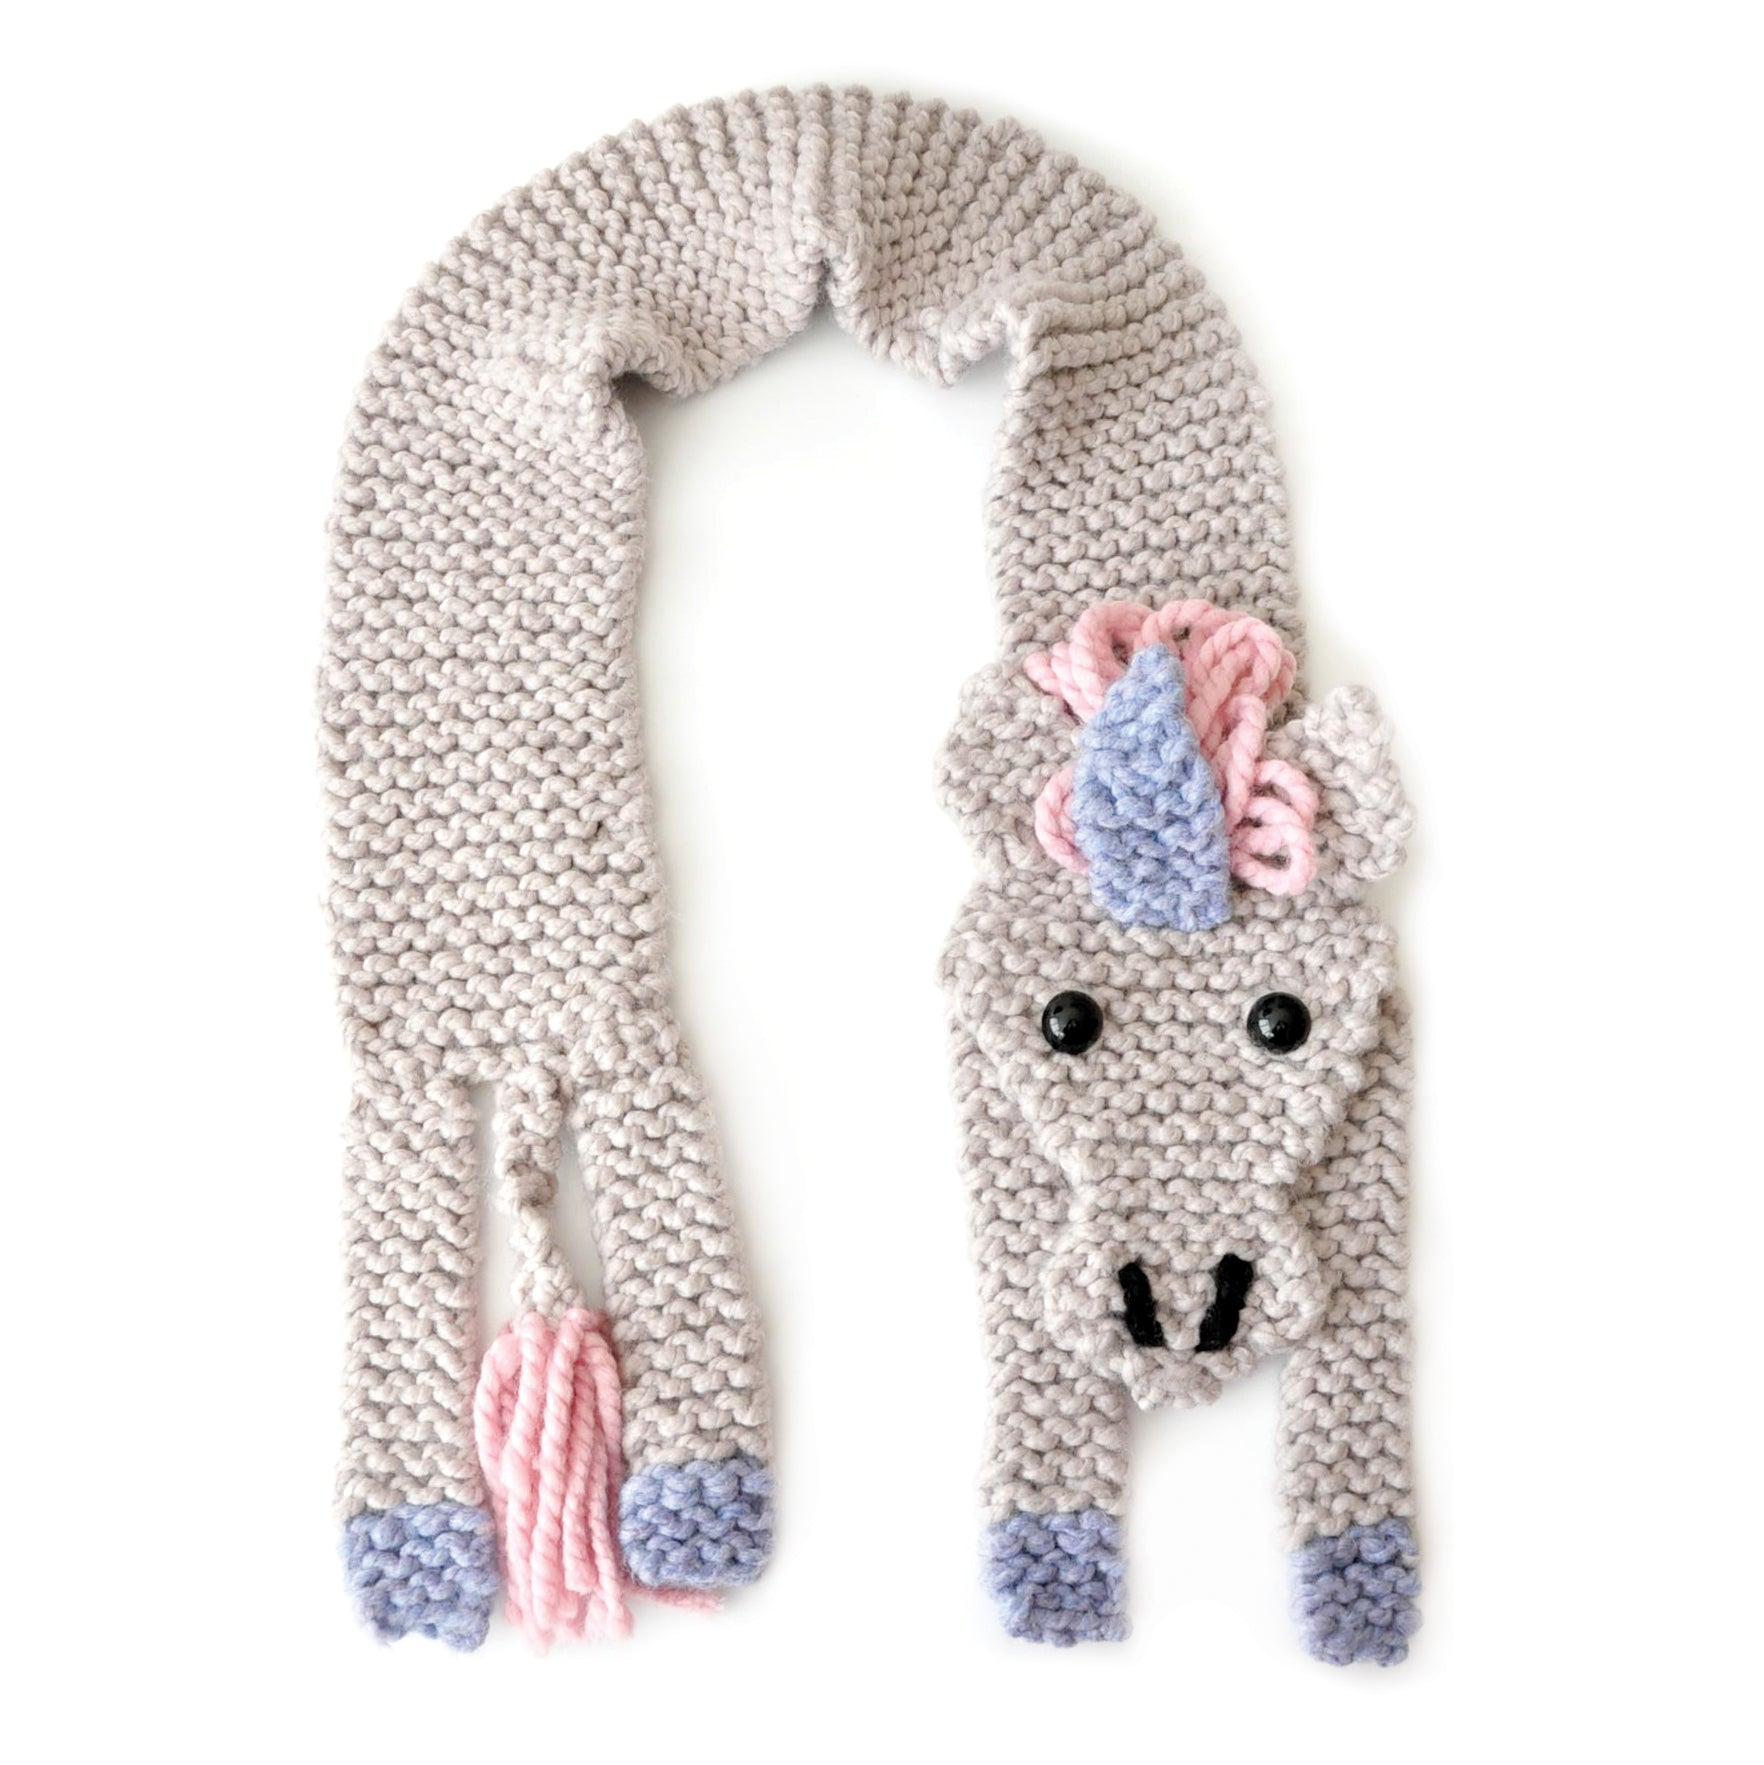 Unicorn Scarf Knitting Kit (4641483358340)